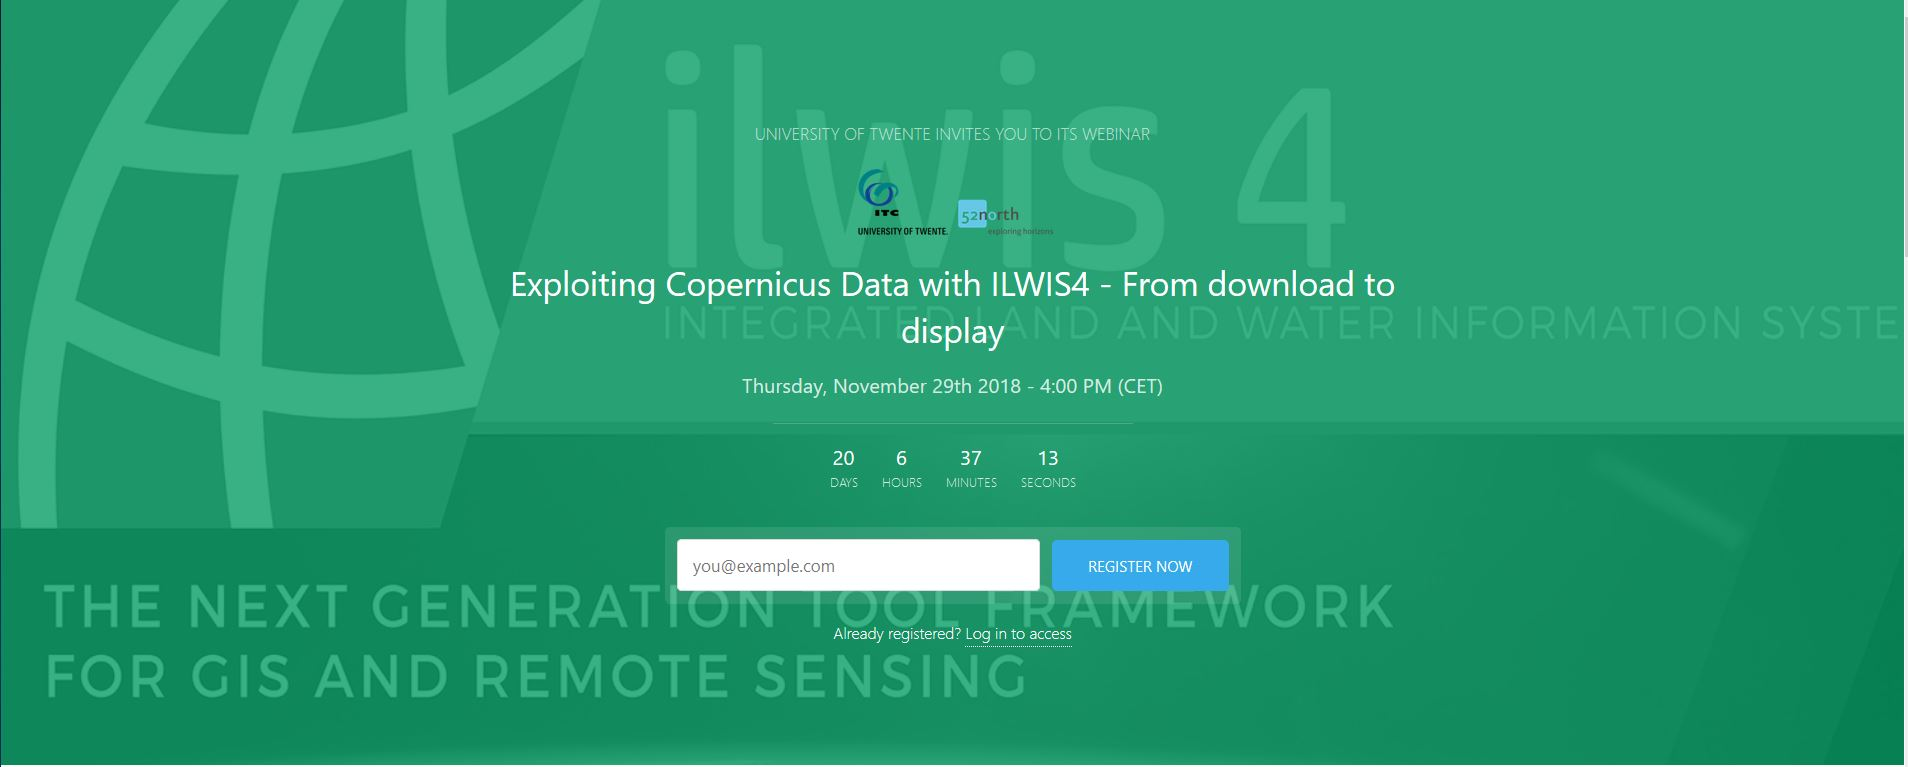 Exploiting Copernicus Data with ILWIS4